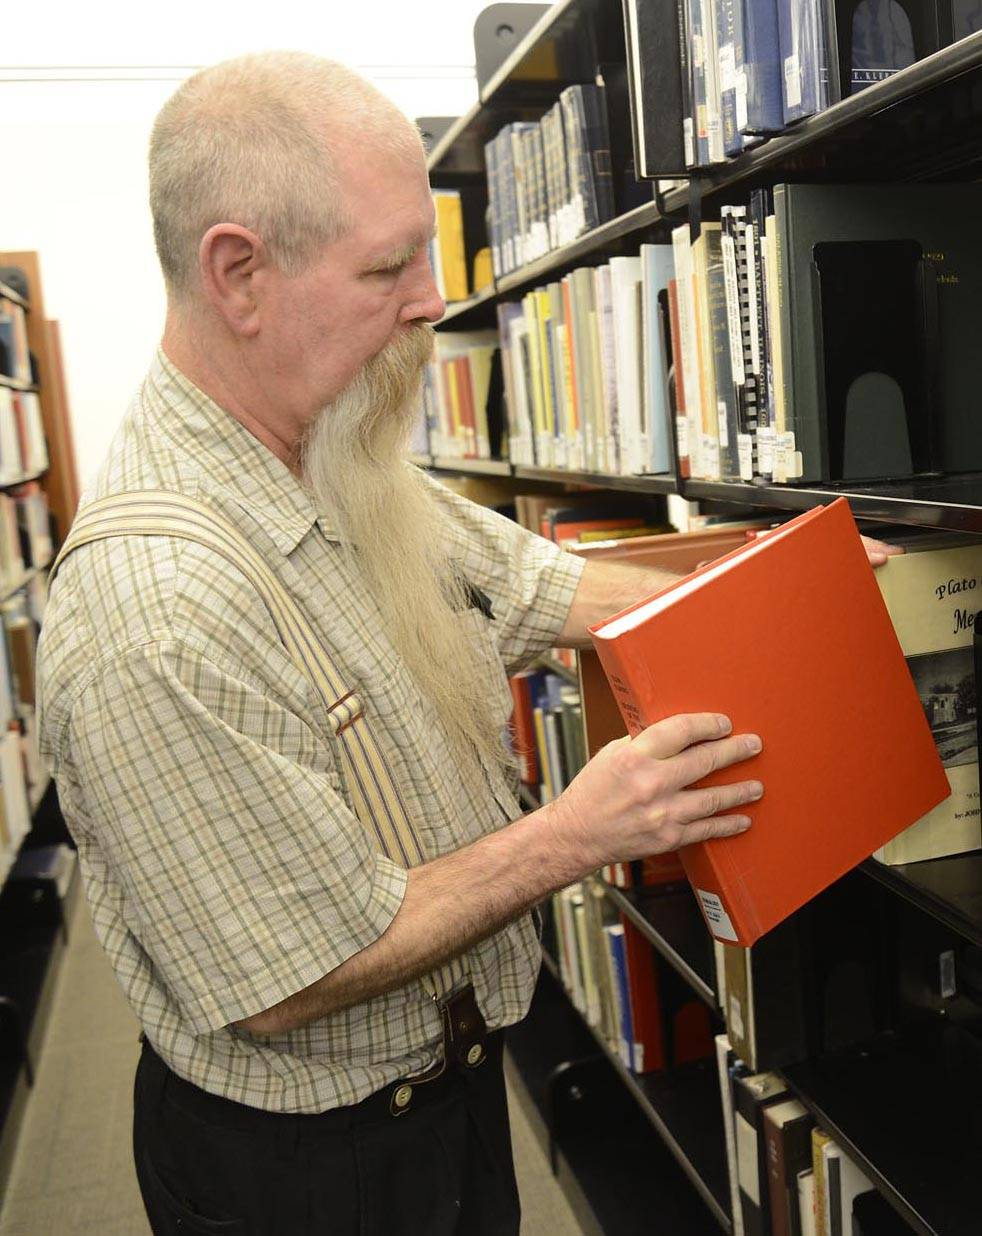 "Ken Gough is a historian who has written a reference book about the Civil War soldiers who lived in Elgin. ""Elgin, Illinois Soldiers of the Civil War"" has personal information about the men who fought. It is on the second floor in the genealogy section at the Gail Borden Public Library."